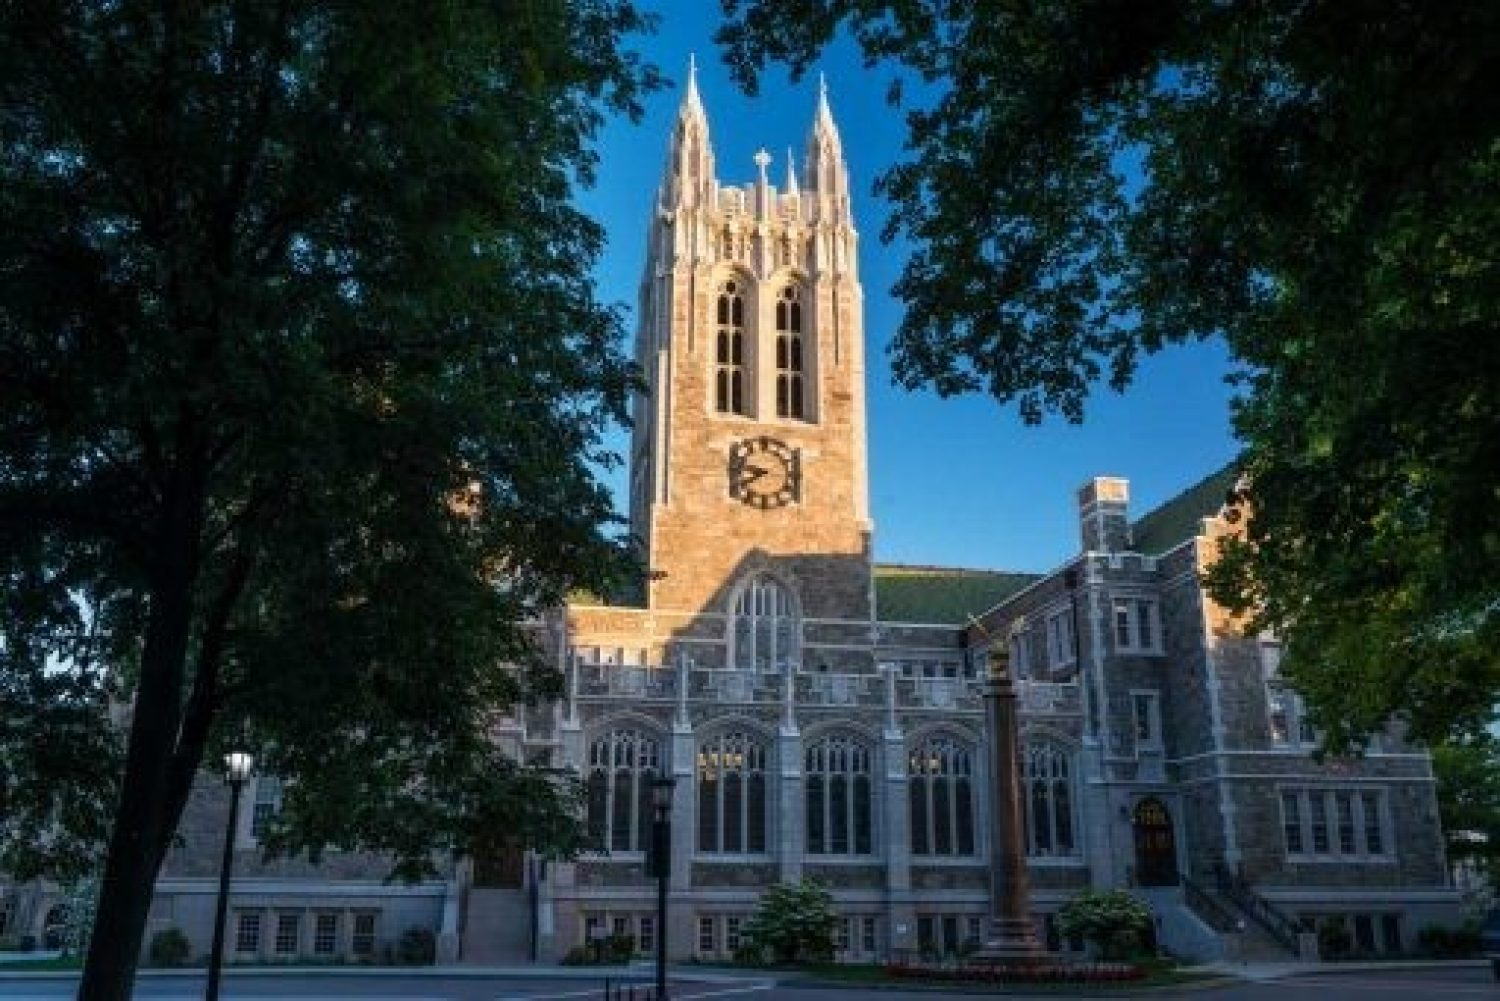 Gasson in Summertime